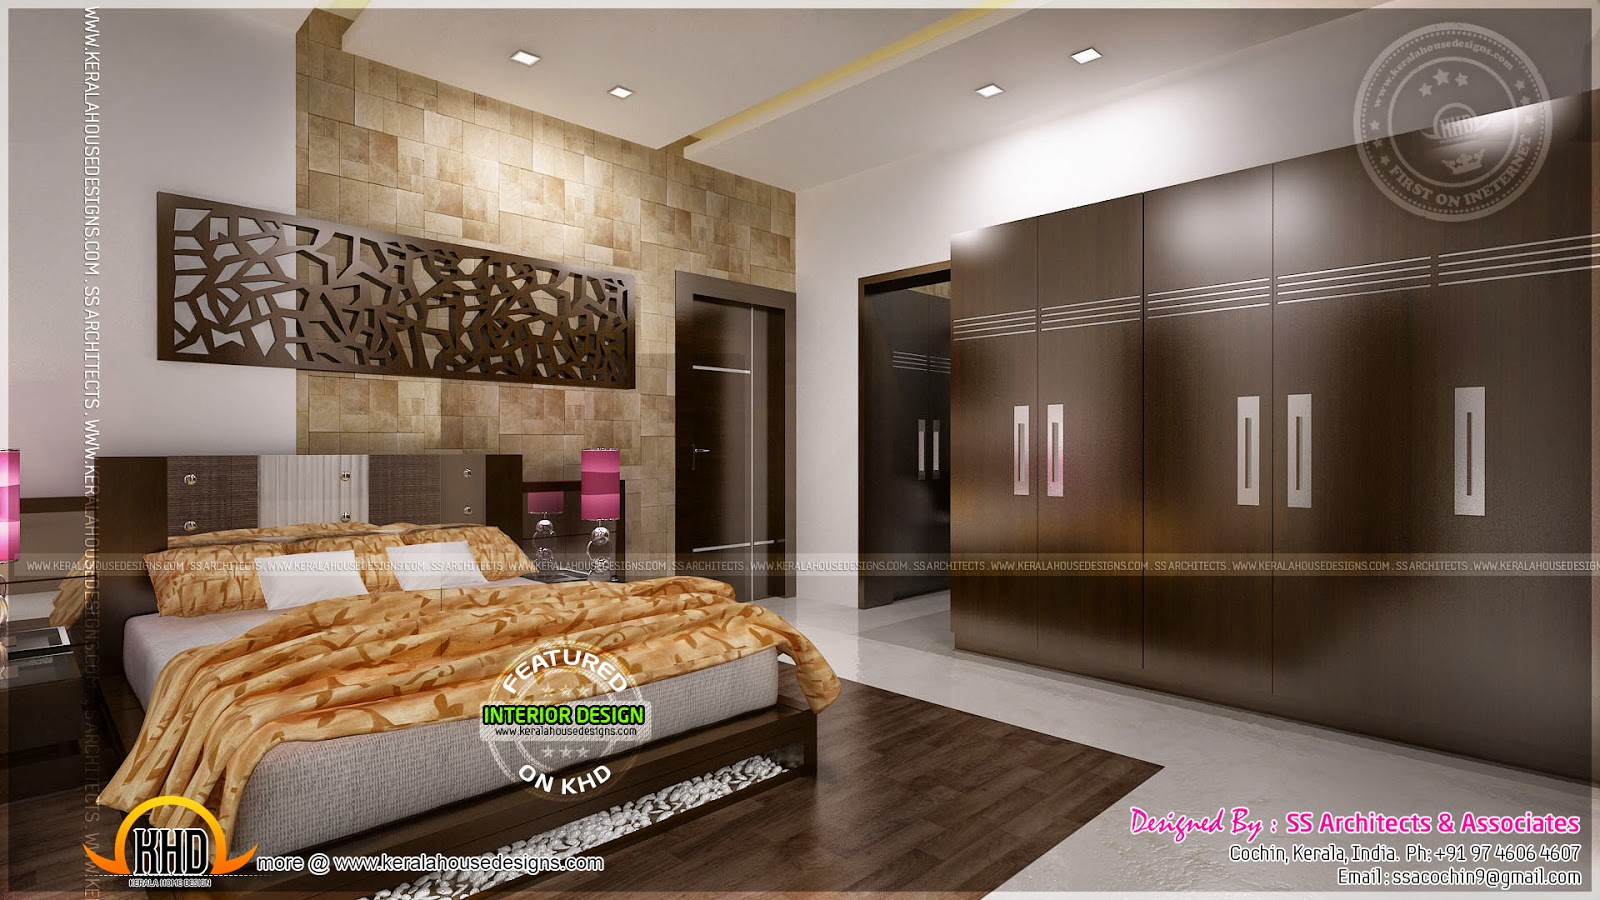 awesome master bedroom interior kerala home design and floor plans. Black Bedroom Furniture Sets. Home Design Ideas